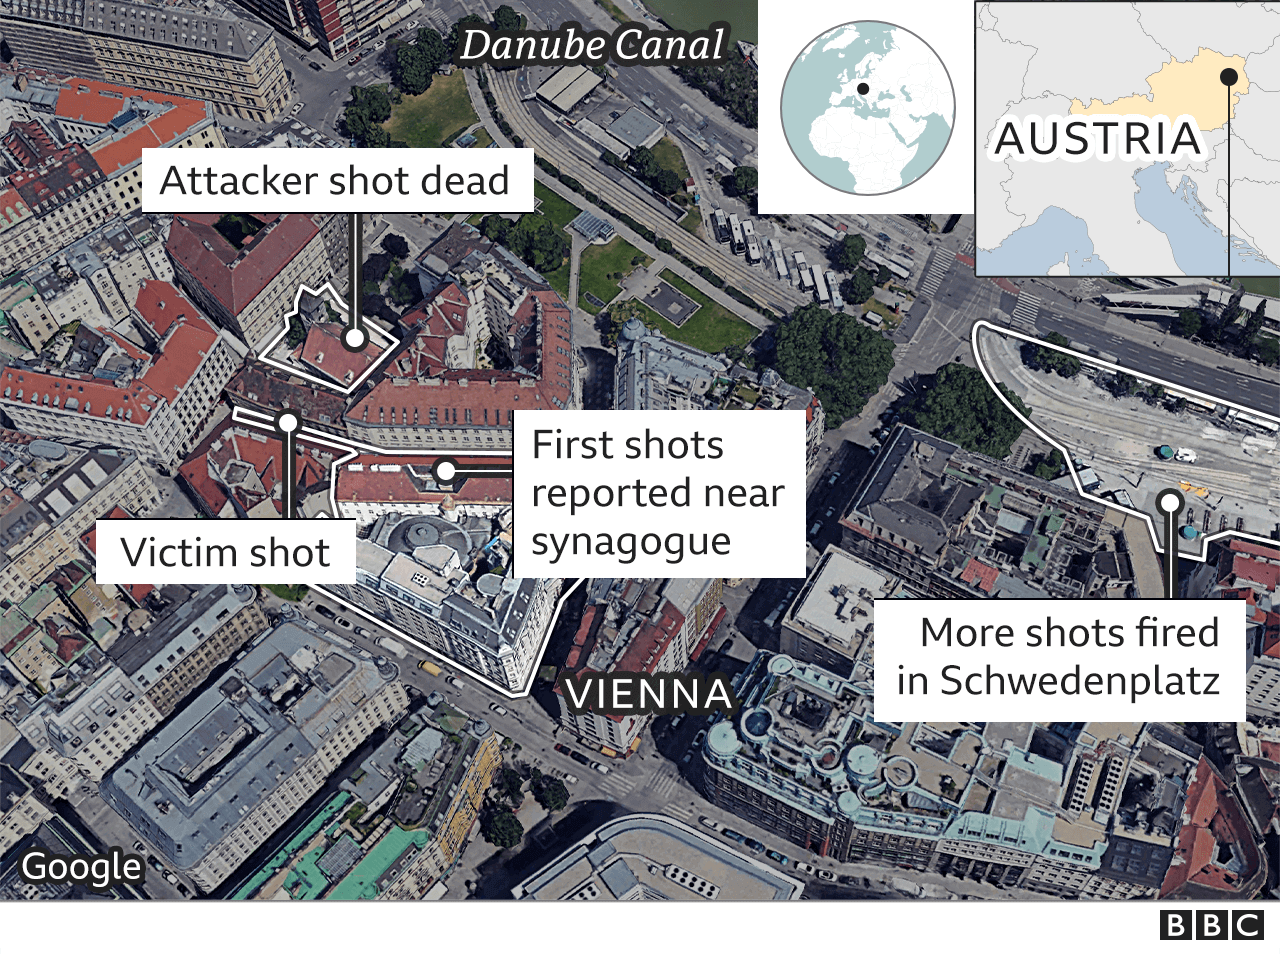 Vienna shooting: What we know about 'Islamist terror' attack - BBC News